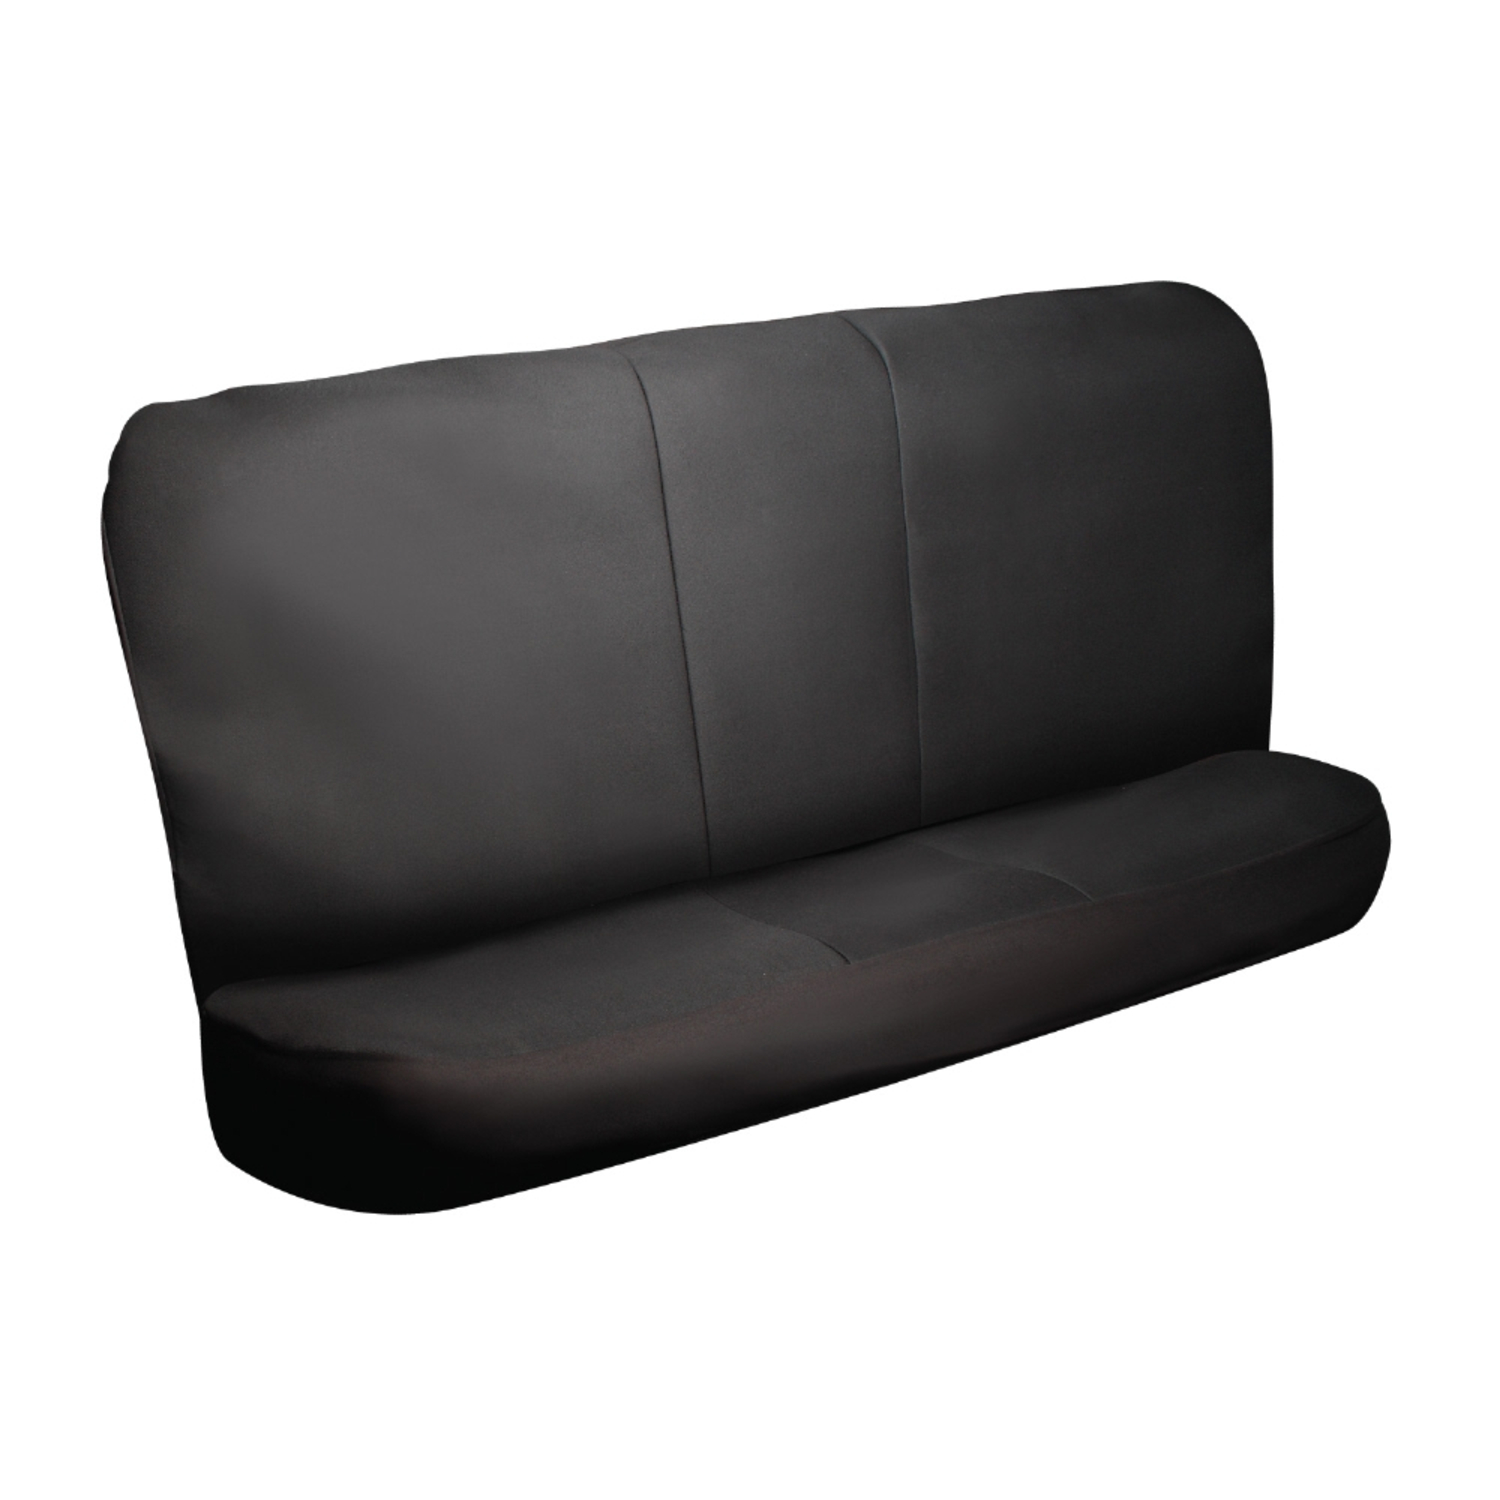 Bench Seat Covers Walmart 28 Images Realtree Xtra Camo Size Bench Seat Cover Walmart Bell